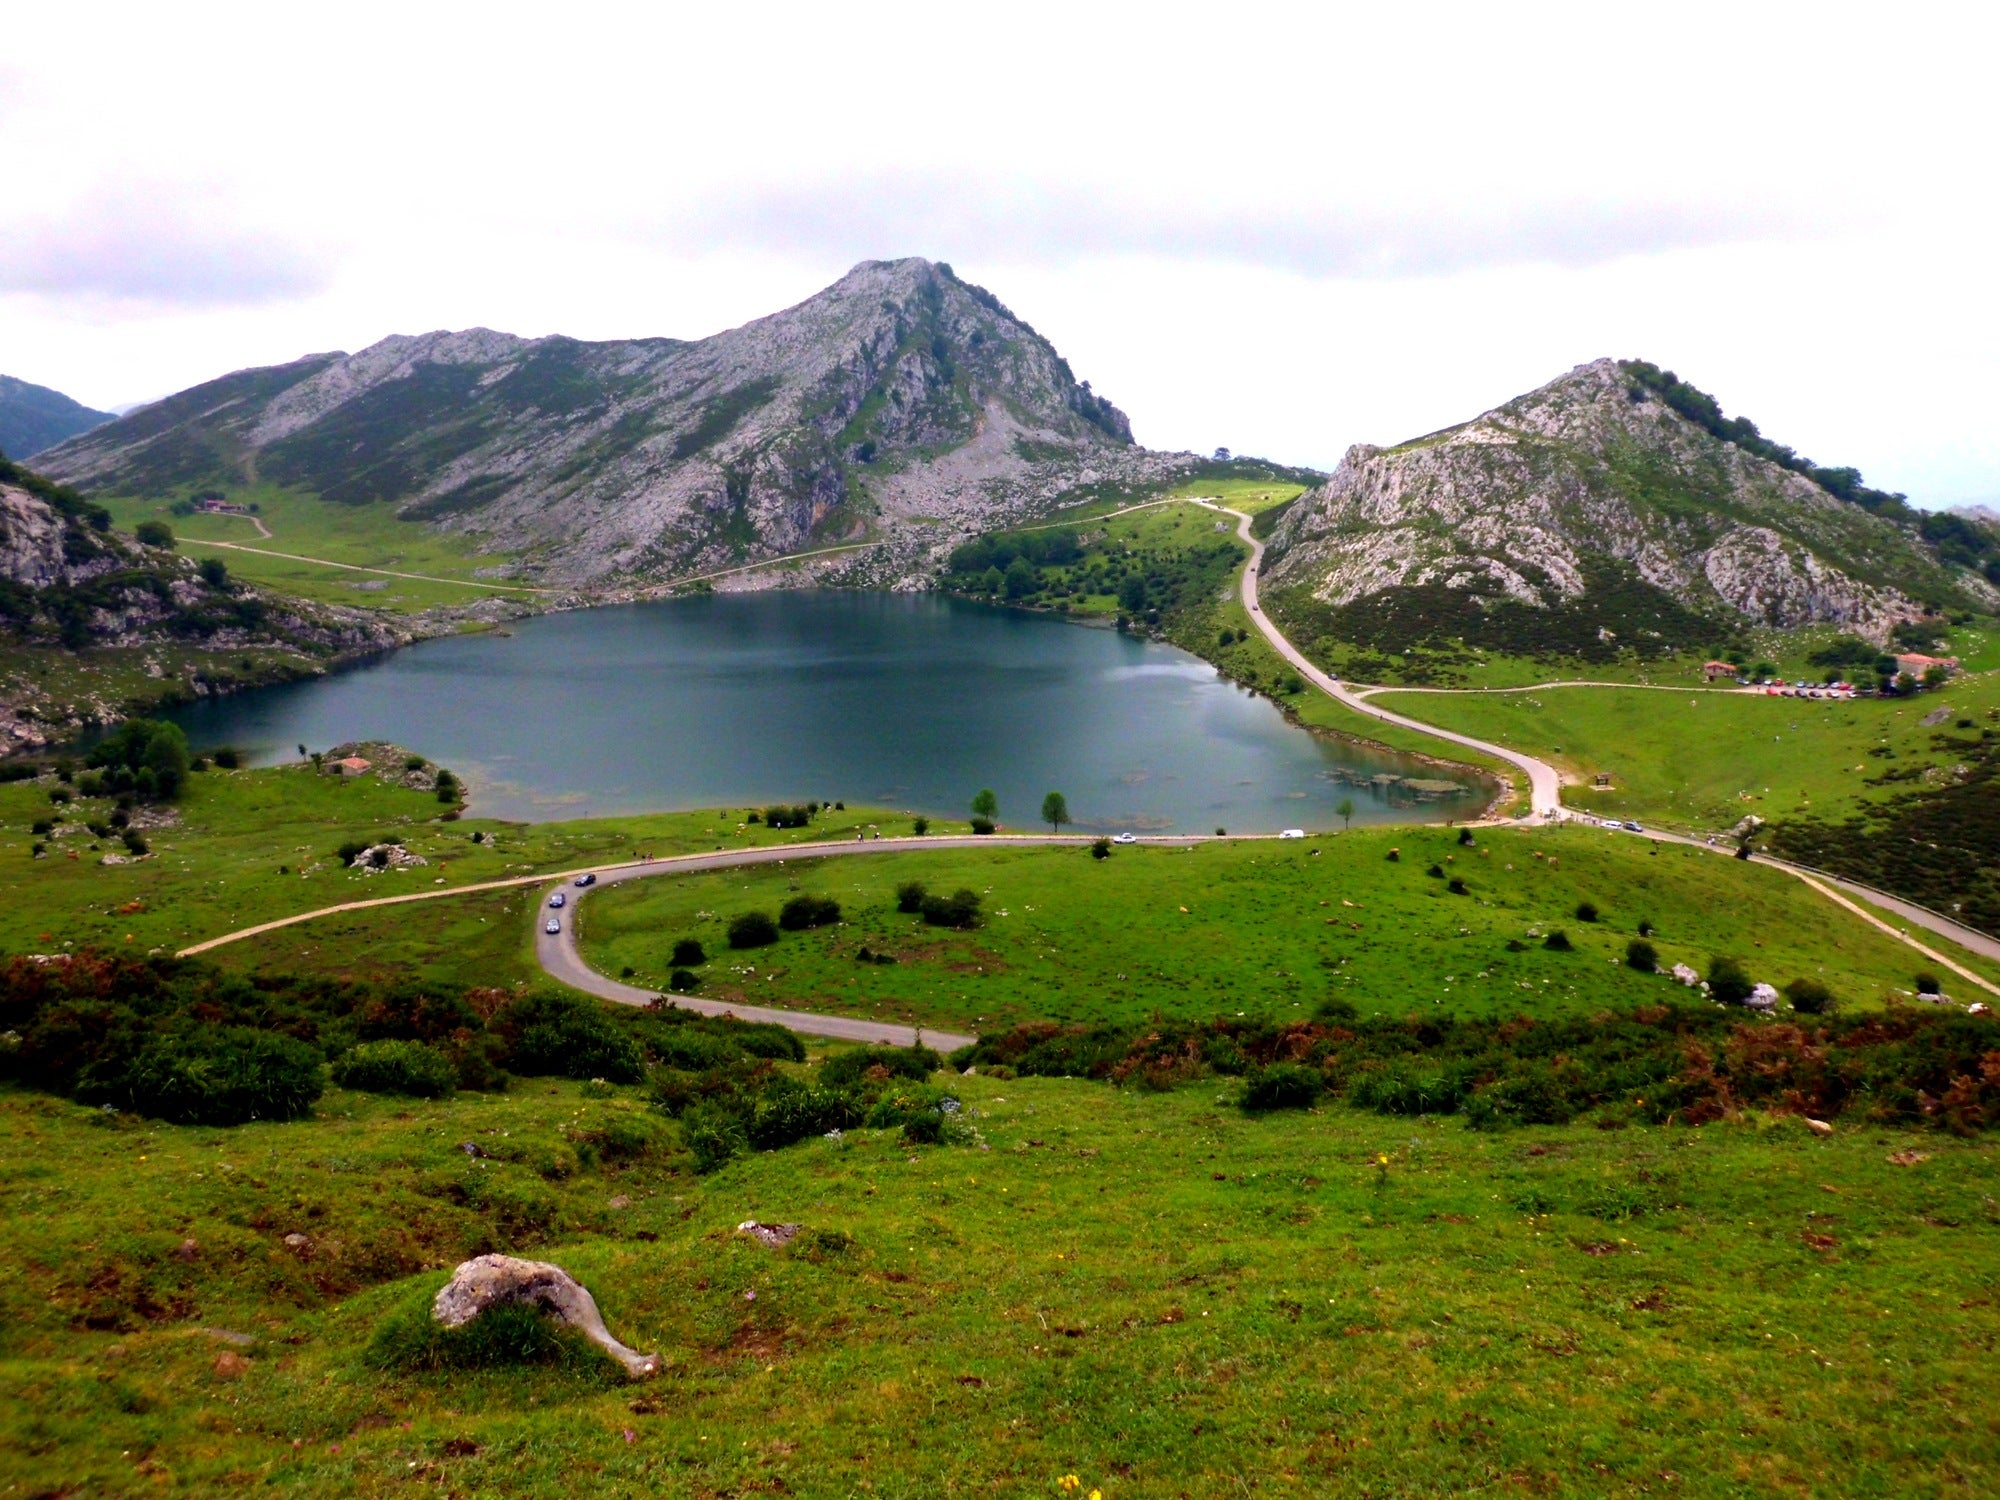 Tarn in The Lakes of Covadonga - Enol and Ercina lakes